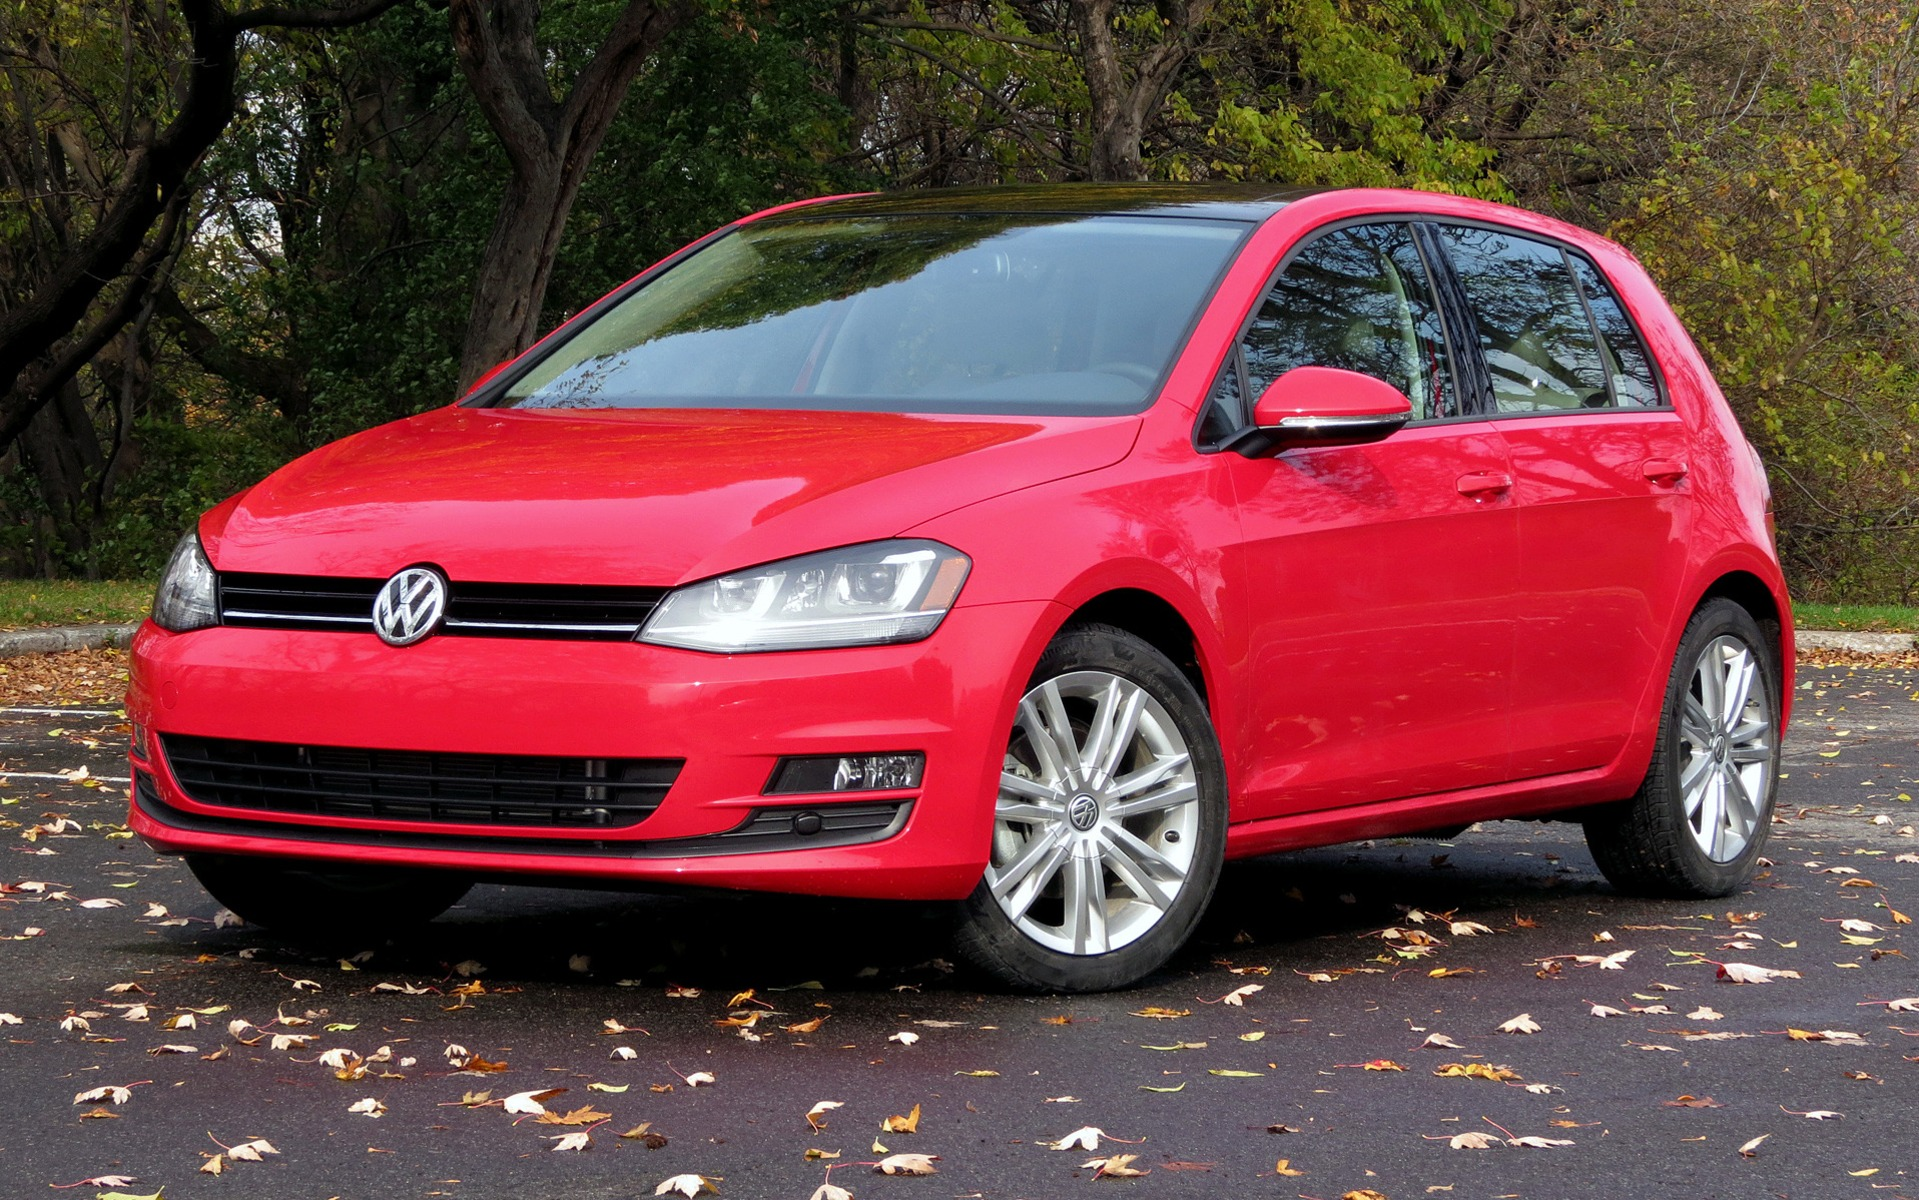 2015 volkswagen golf tdi picture gallery photo 4 41 the car guide. Black Bedroom Furniture Sets. Home Design Ideas